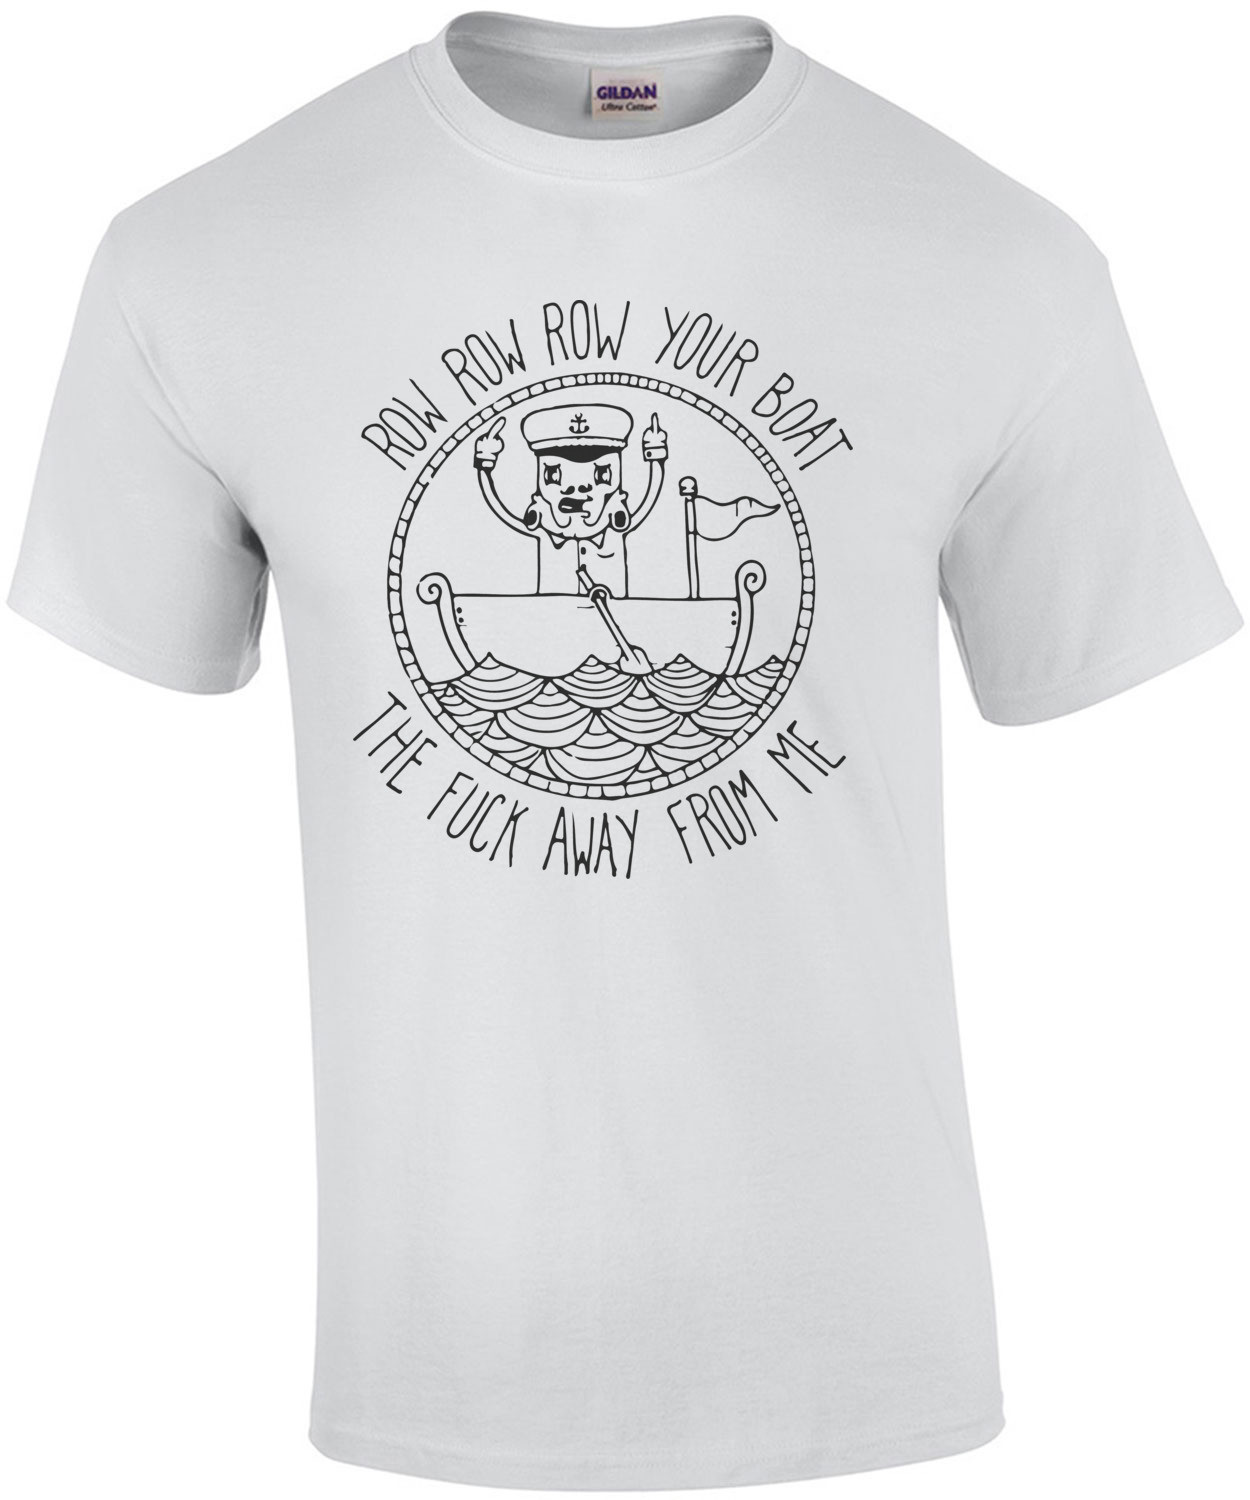 Row row row your boat the fuck away from me t-shirt